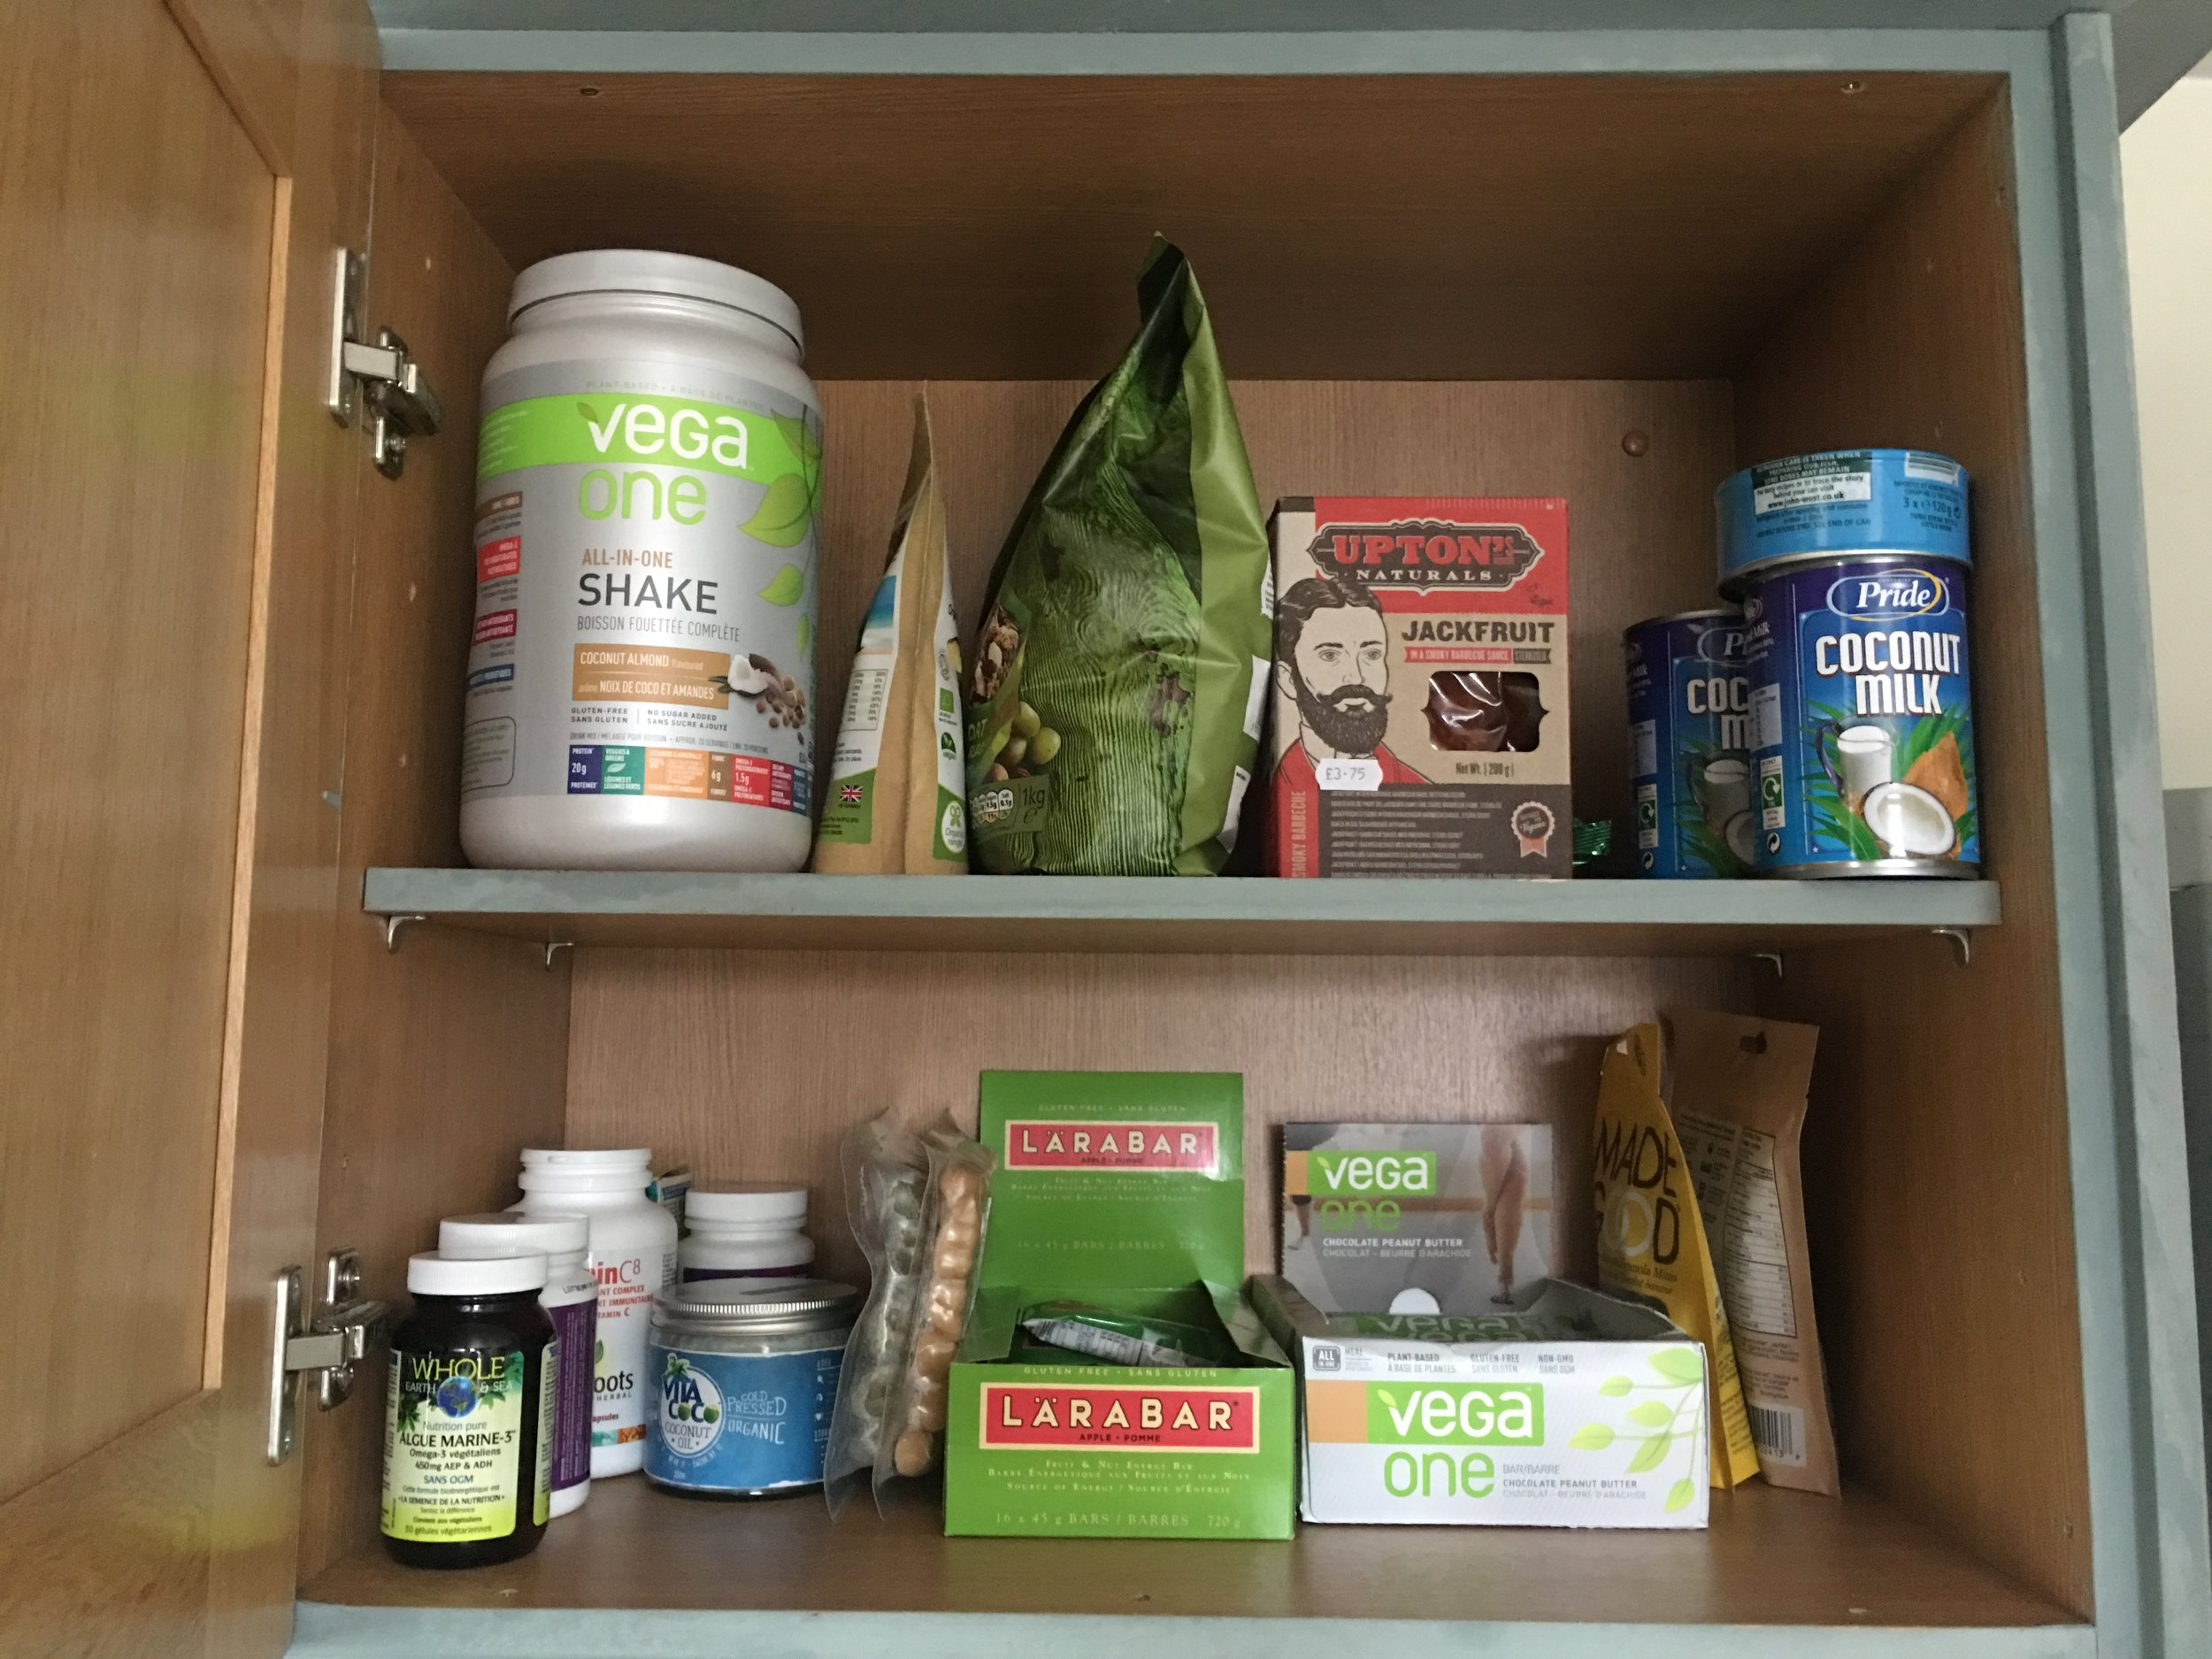 My cupboard in Wales. I brought my own supplements and also my own Vega. It's double the price in the UK, so it was worth bringing from Vancouver. Supplements are from Vita Save in North Vancouver.